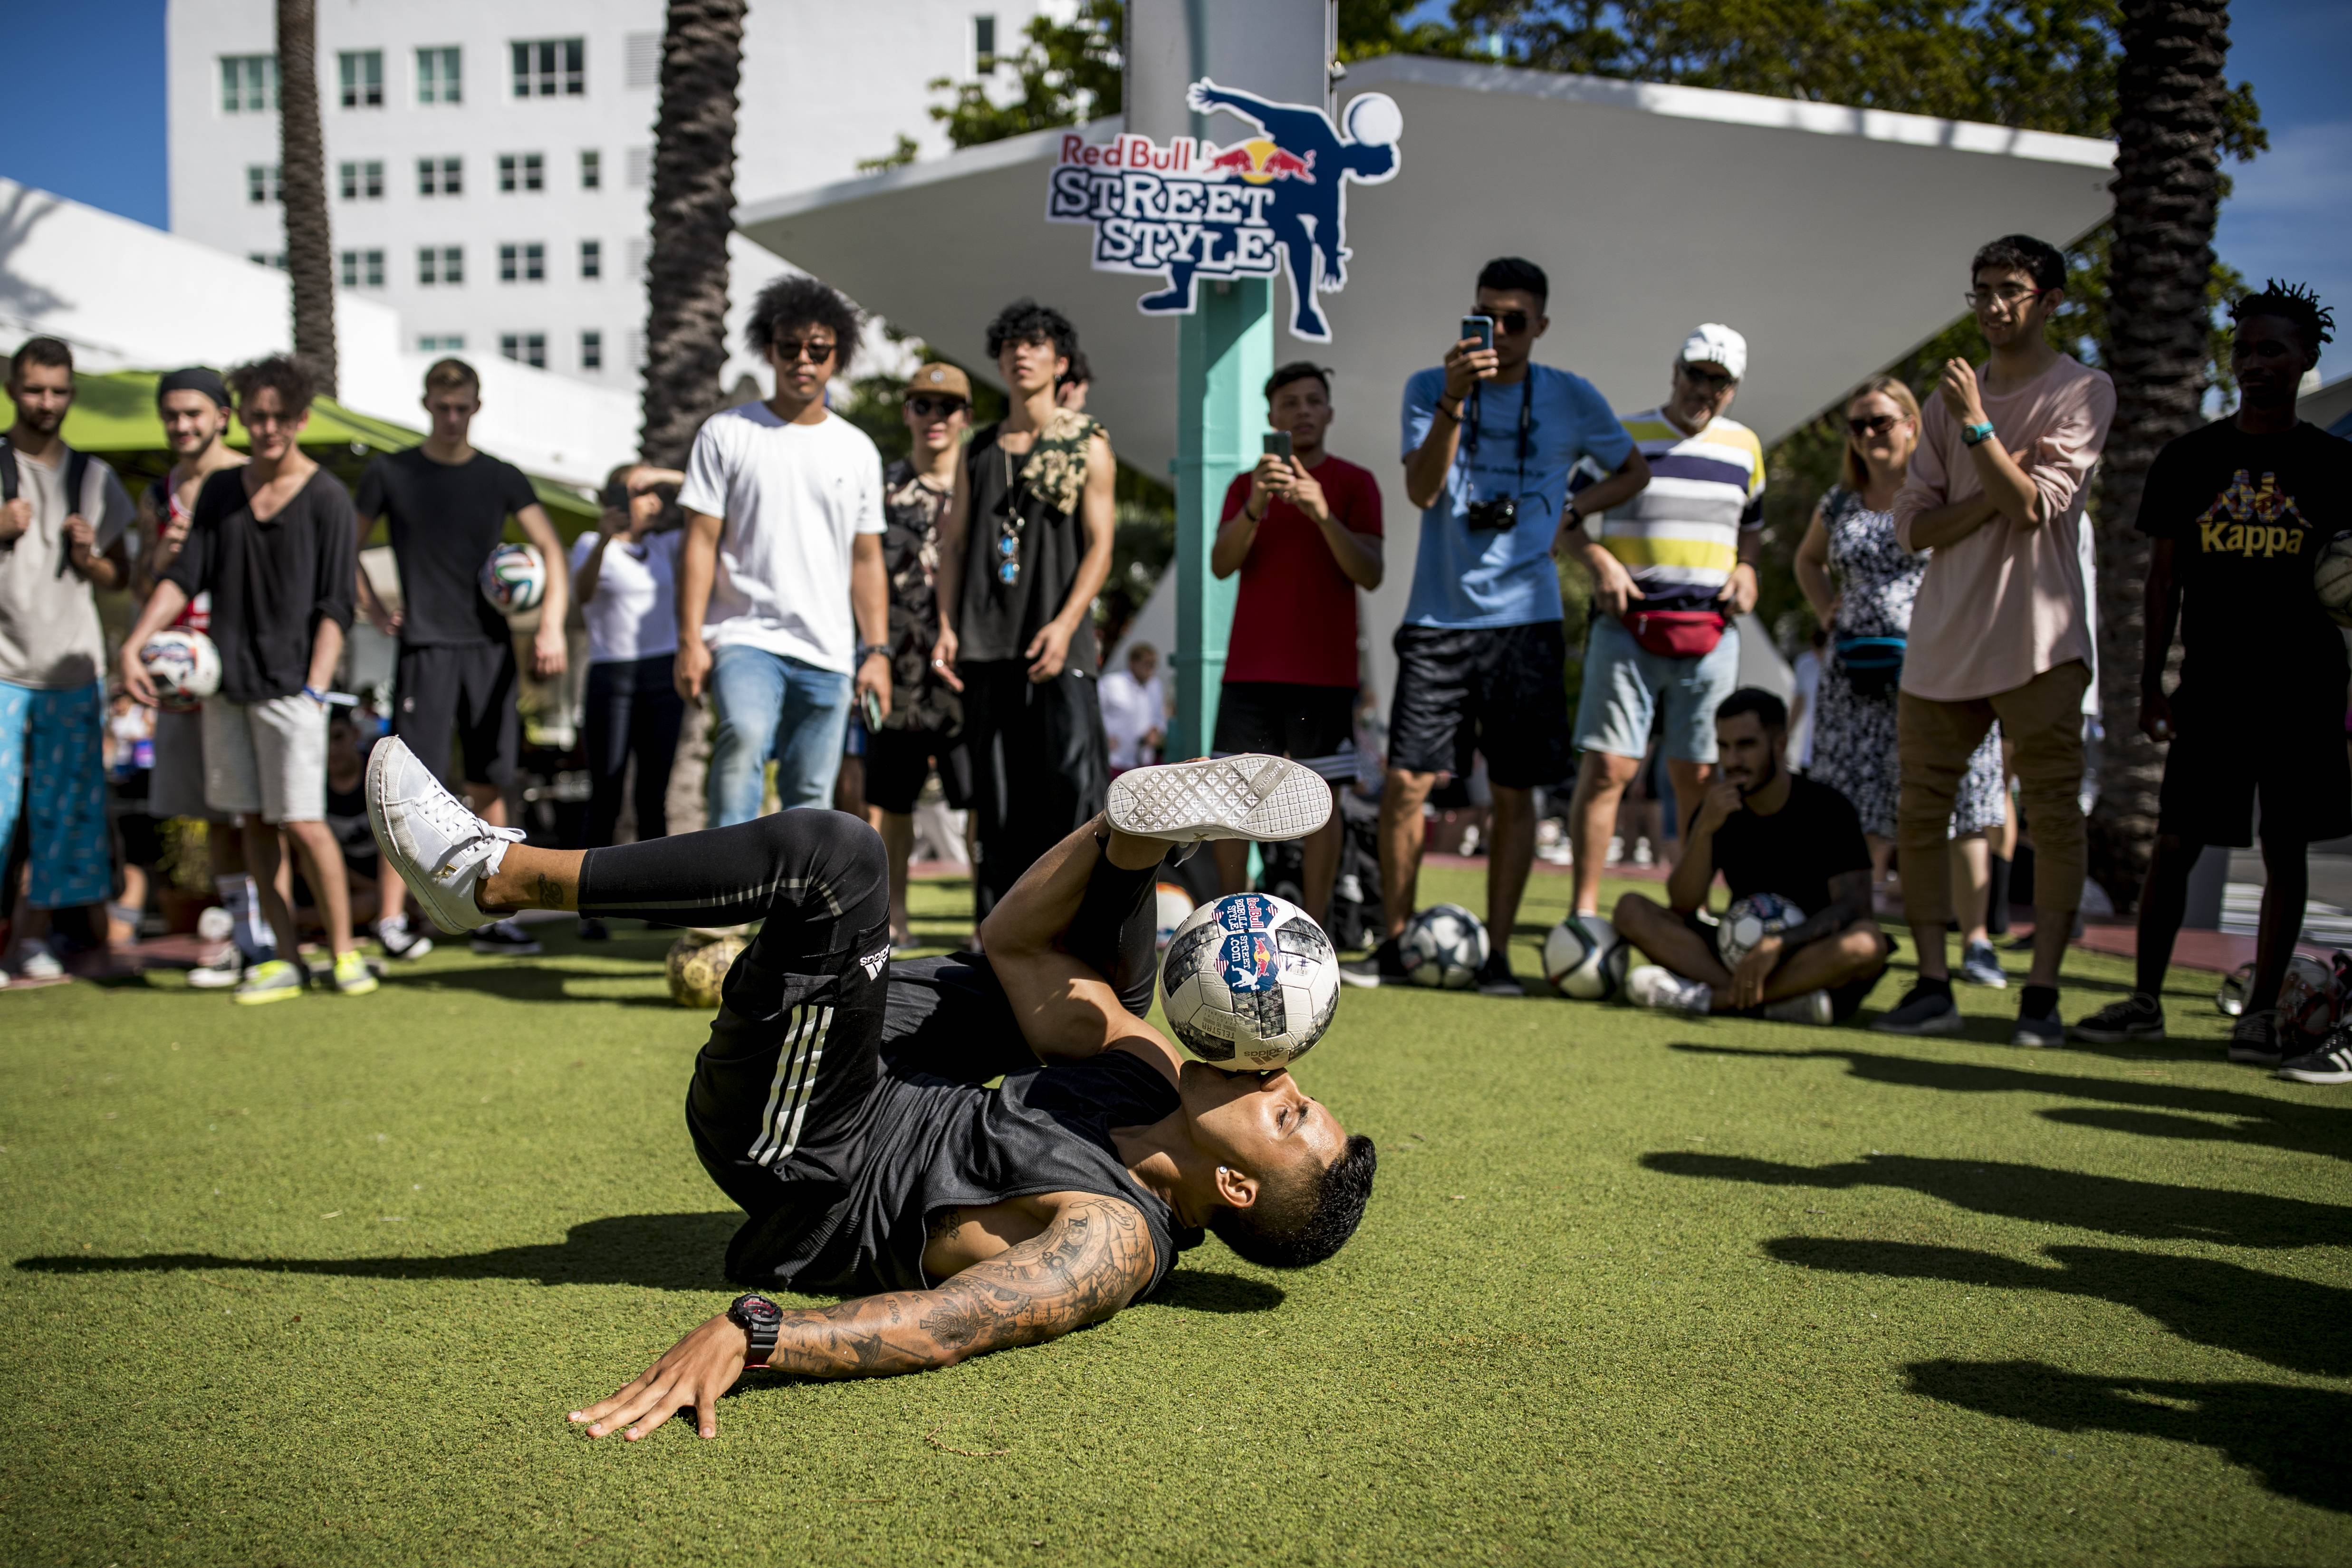 TOP ATHLETE BIOS, RED BULL STREET STYLE WORLD FINAL 2019